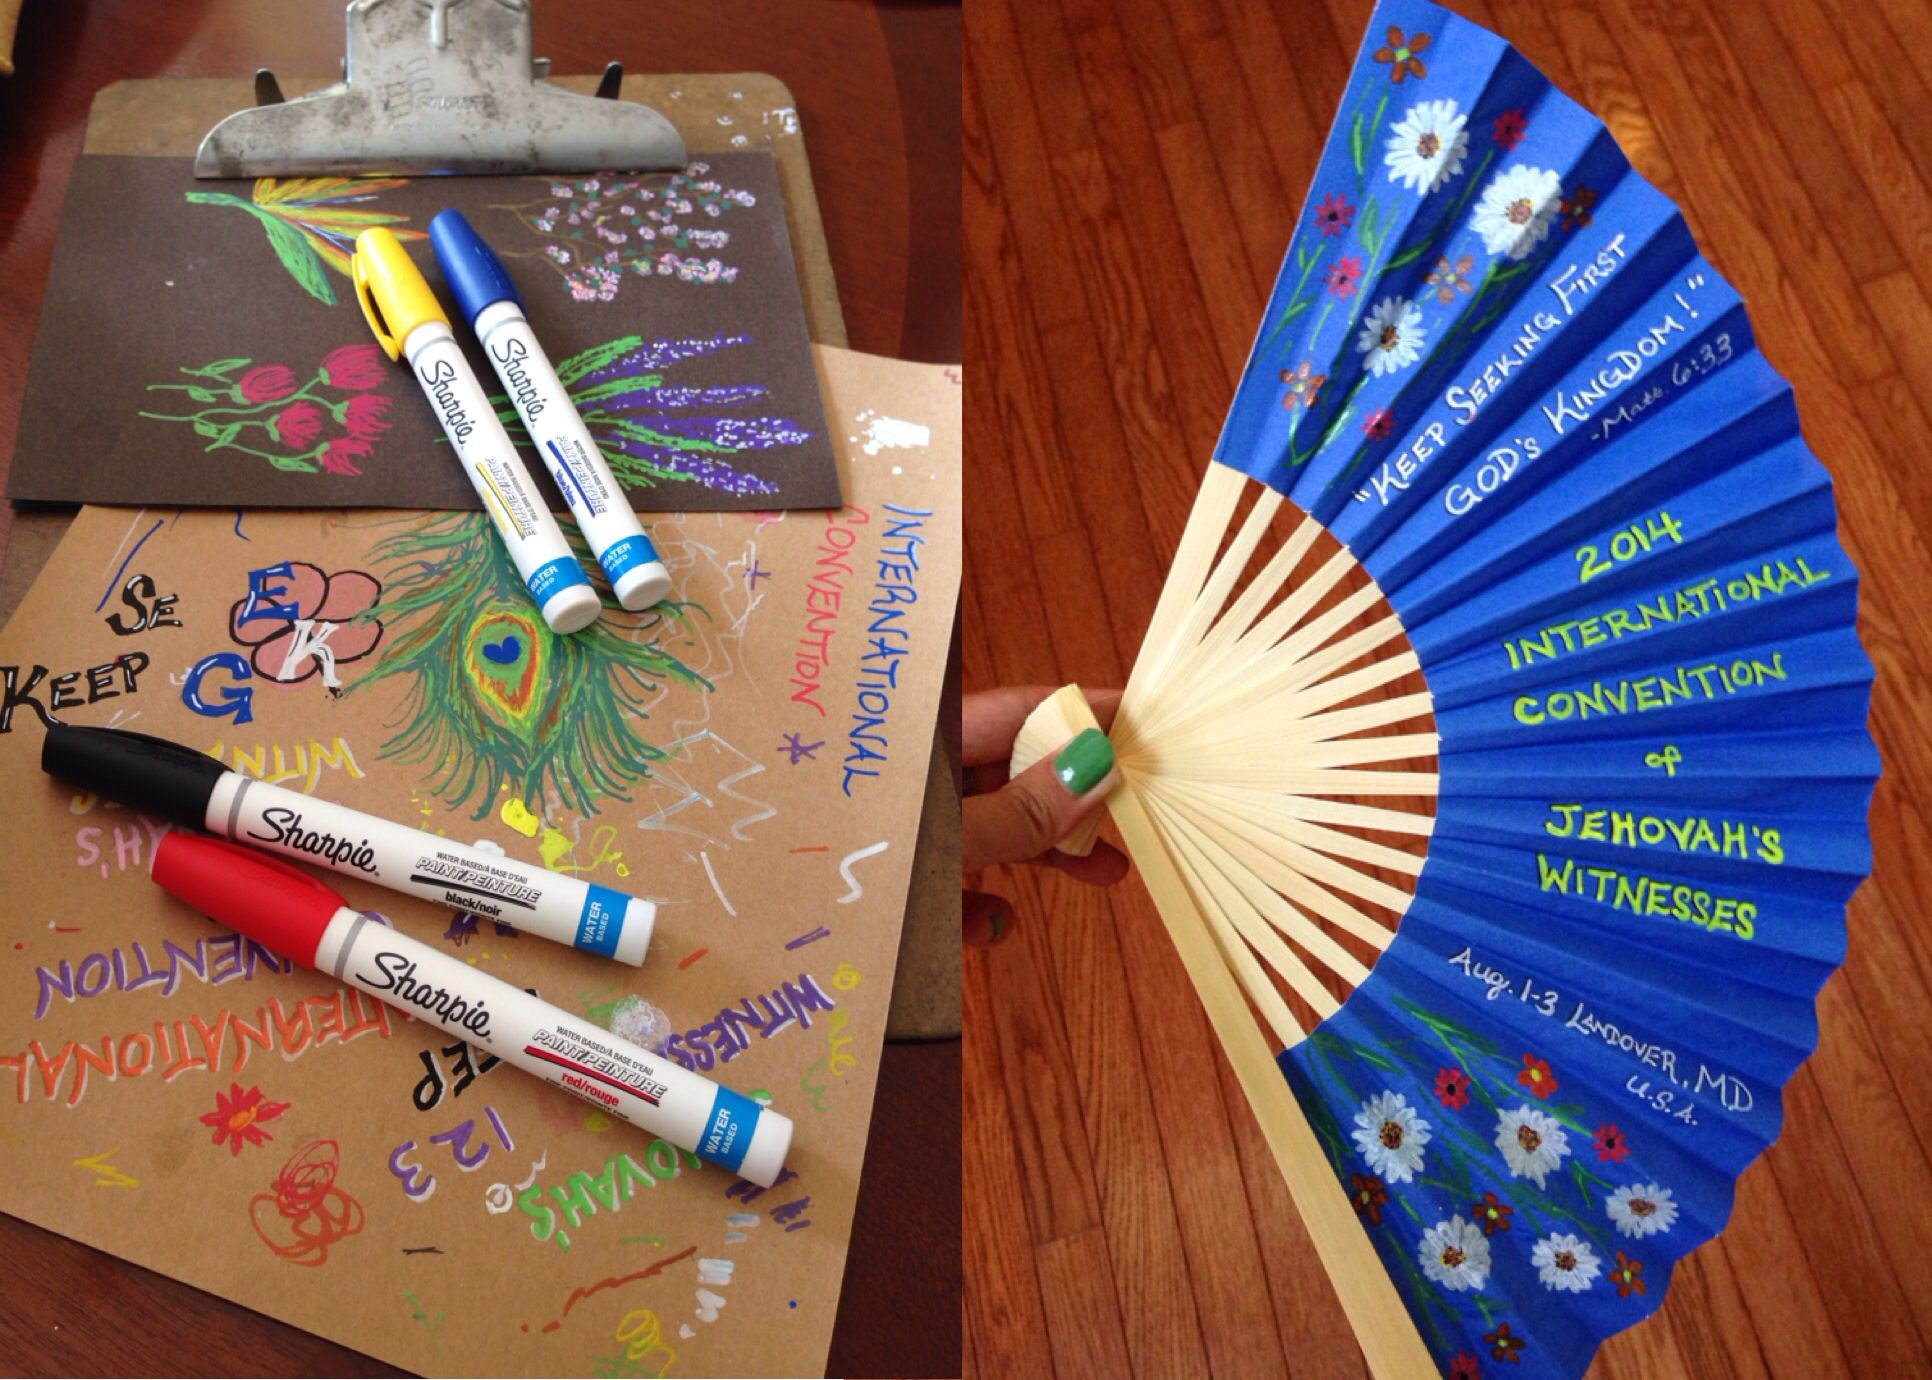 International Convention Gifts: Painted Paper Fans - Ordered from paperlanternstore.com, used Sharpie Water-Based Paint Pens to draw the words and flowers :)